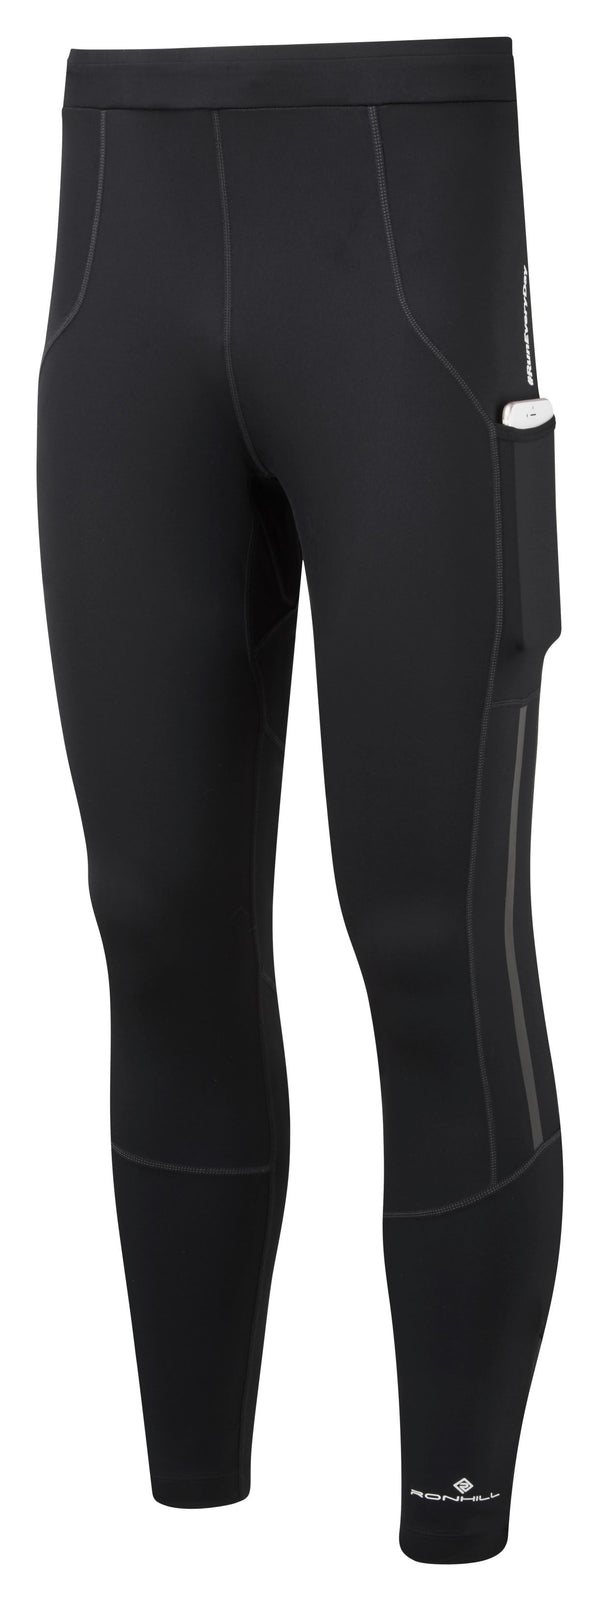 RonHill M Tech Revive Stretch Tight - Black